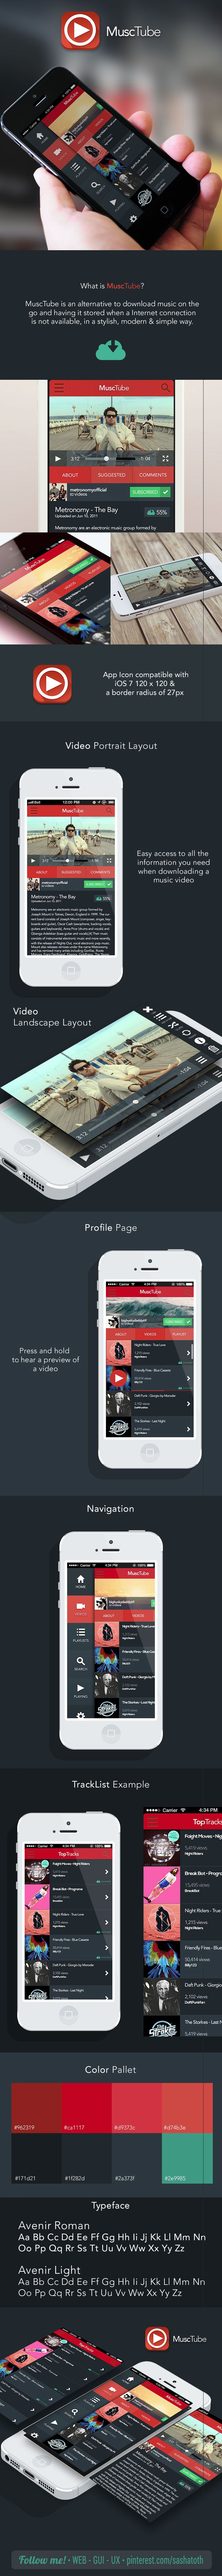 "YouTube downloader re-design *** ""MuscTube is an alternative to download music on the go and having it stored when a Internet connection is not available, in a stylish, modern & simple way."" by Isaac Sanchez, via Behance *** #app #gui #ui #behance"